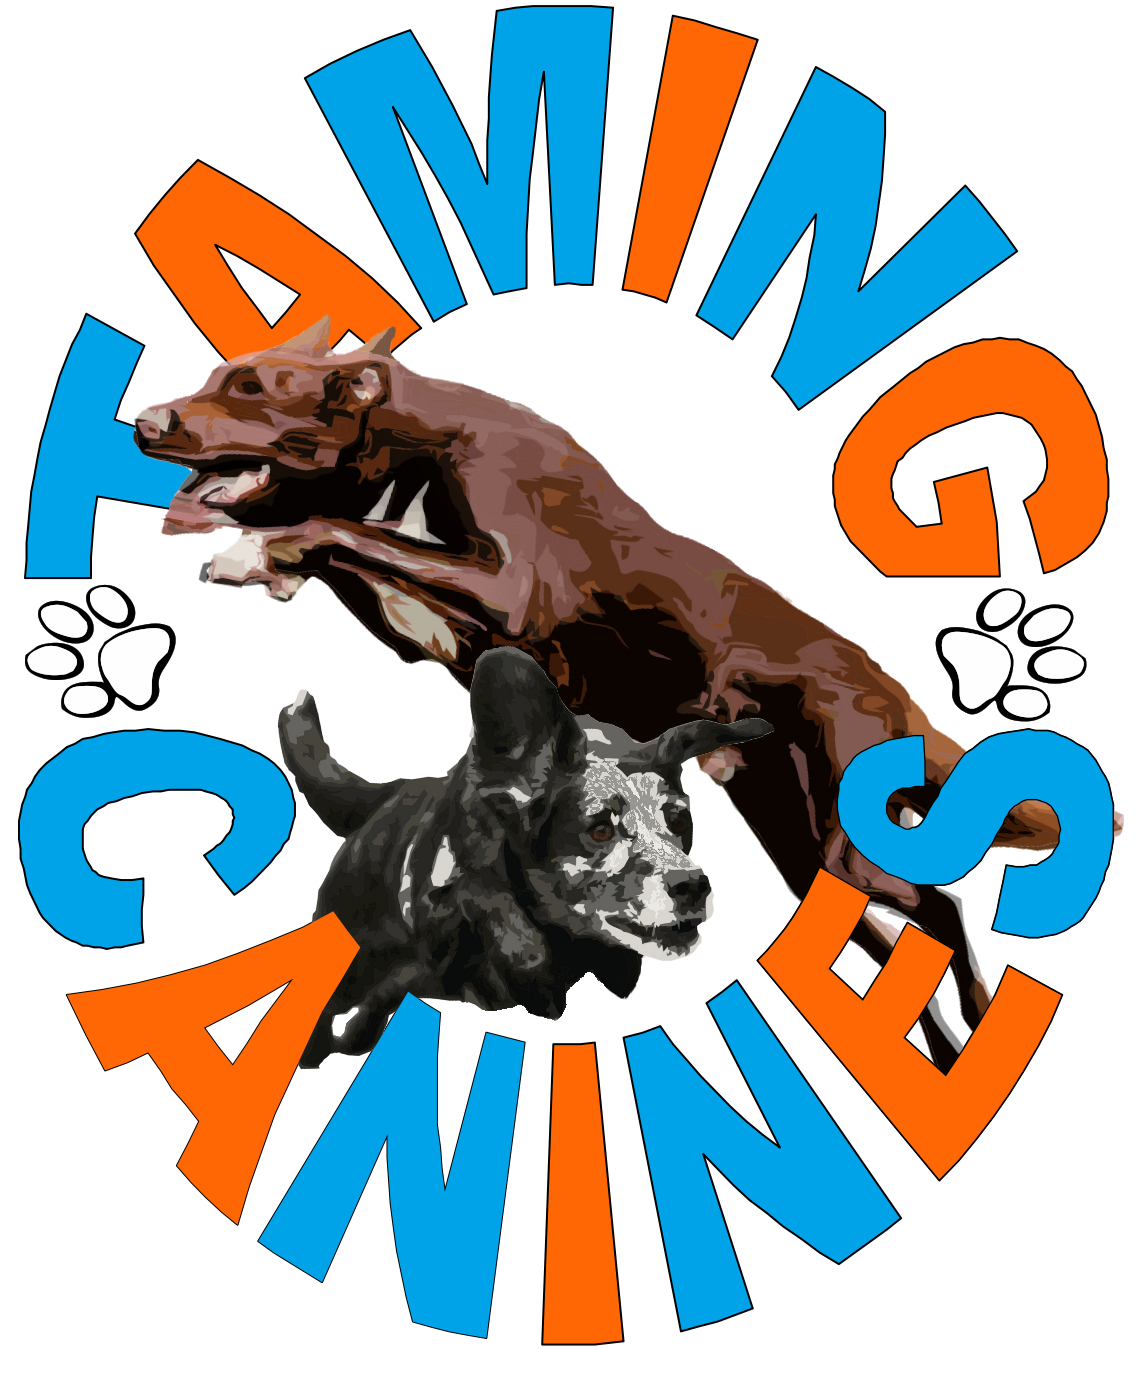 Taming Canines